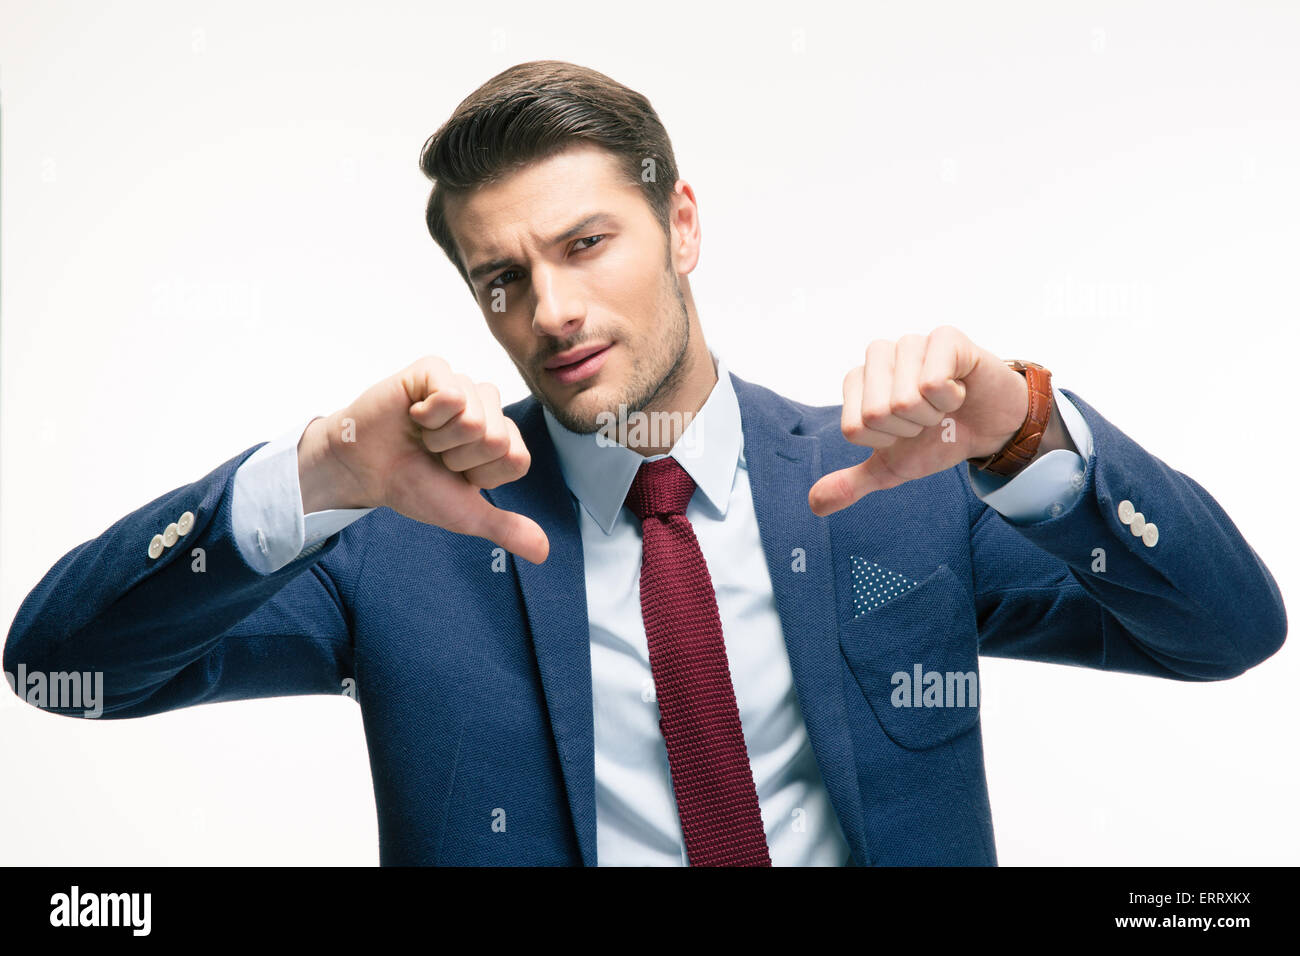 Confident businessman showing thumbs down sign isolated on a white background. Looking at camera - Stock Image